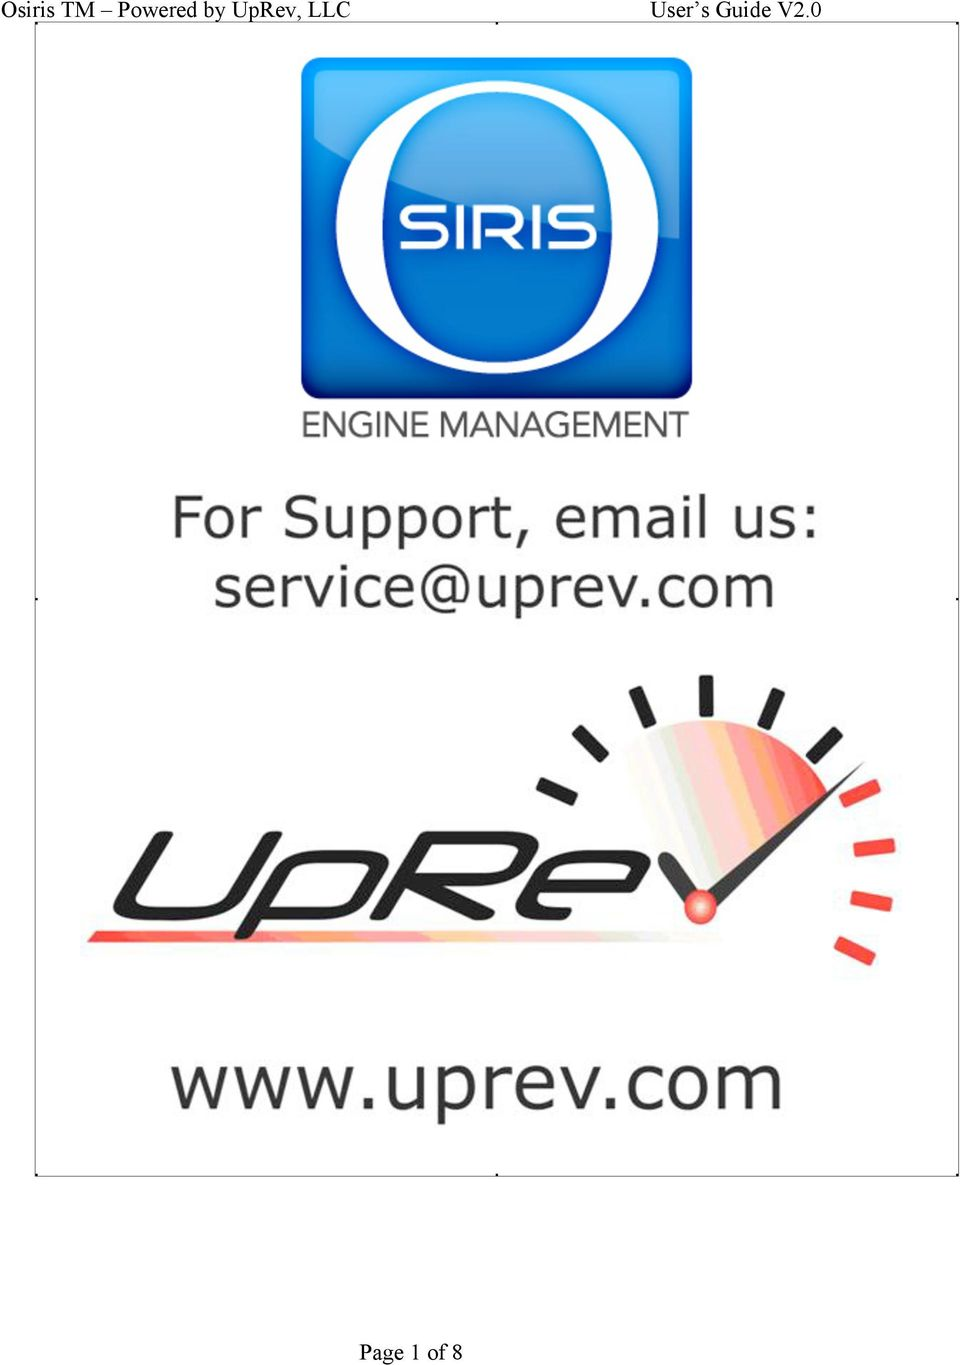 Osiris TM Powered by UpRev, LLC User s Guide V2 0 - PDF